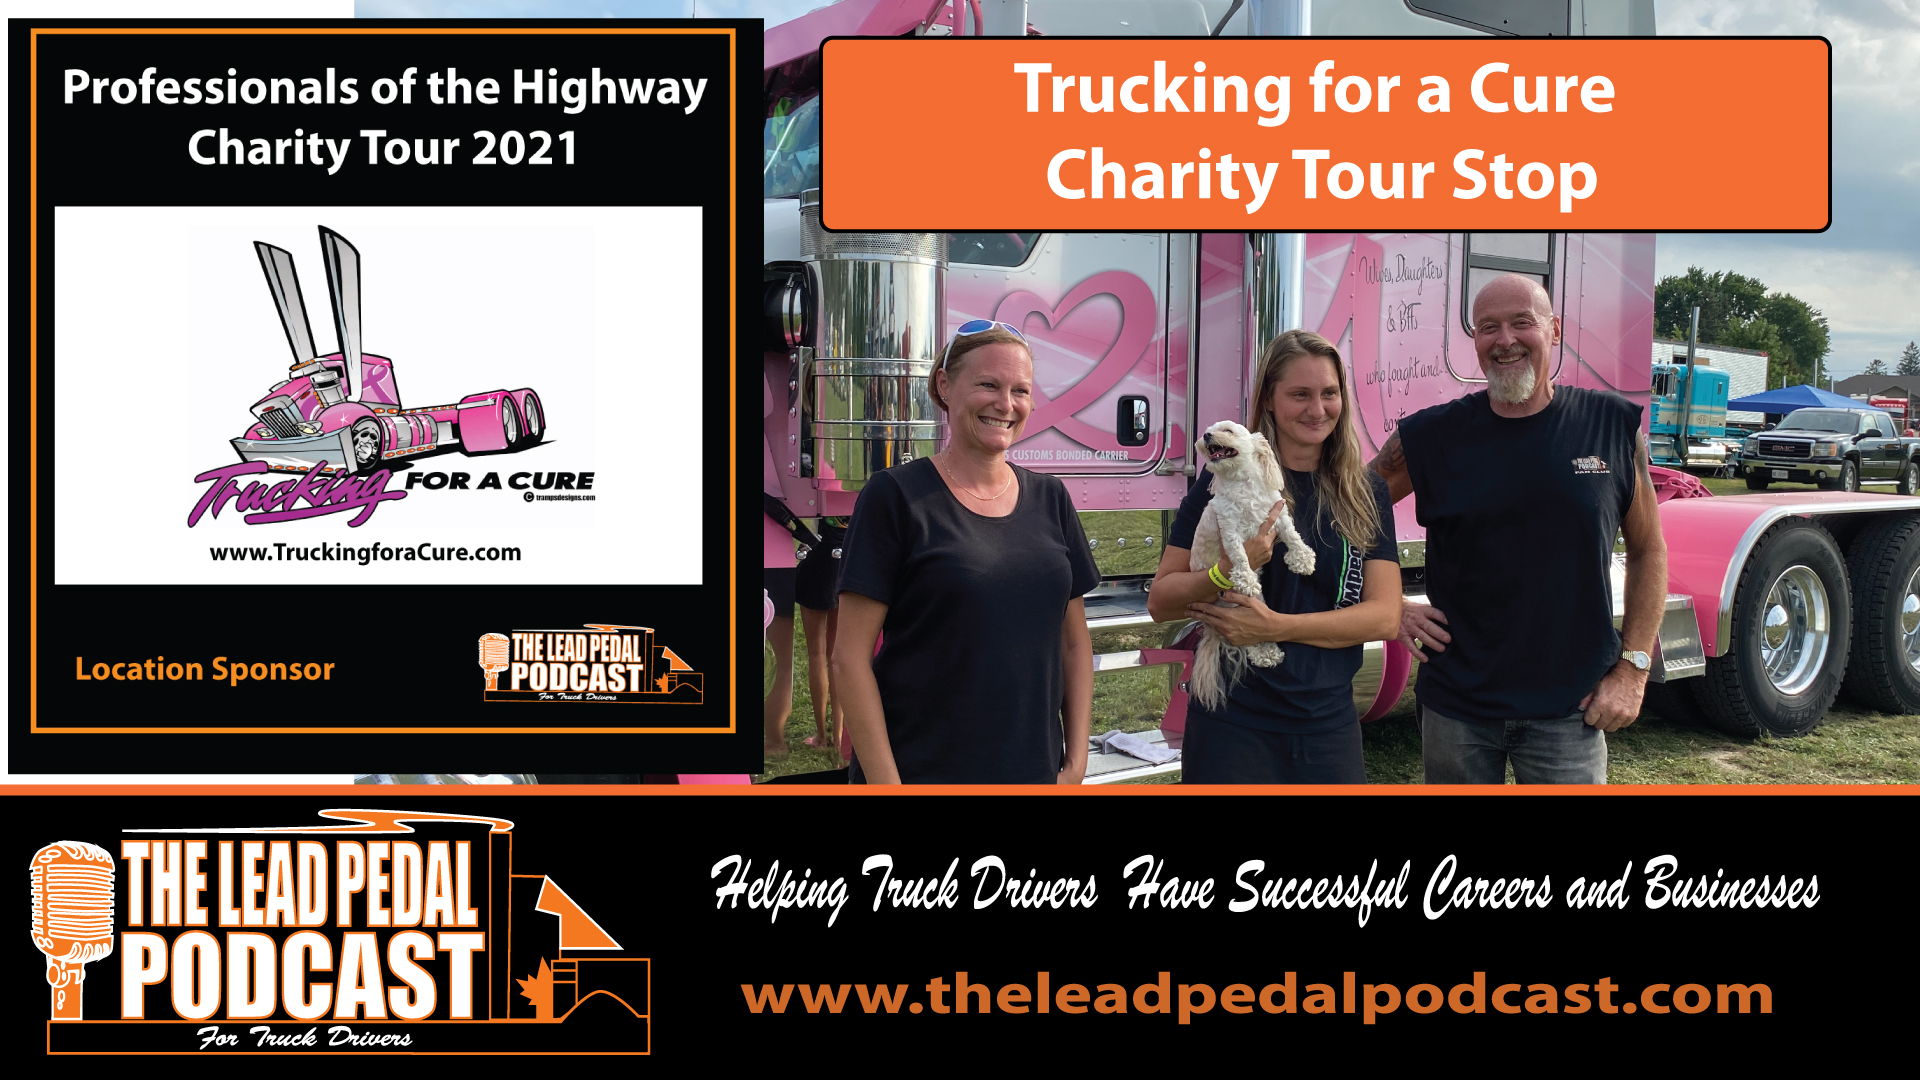 LP693 Trucking for a Cure with Driverette: Professionals of the Highway Charity Tour